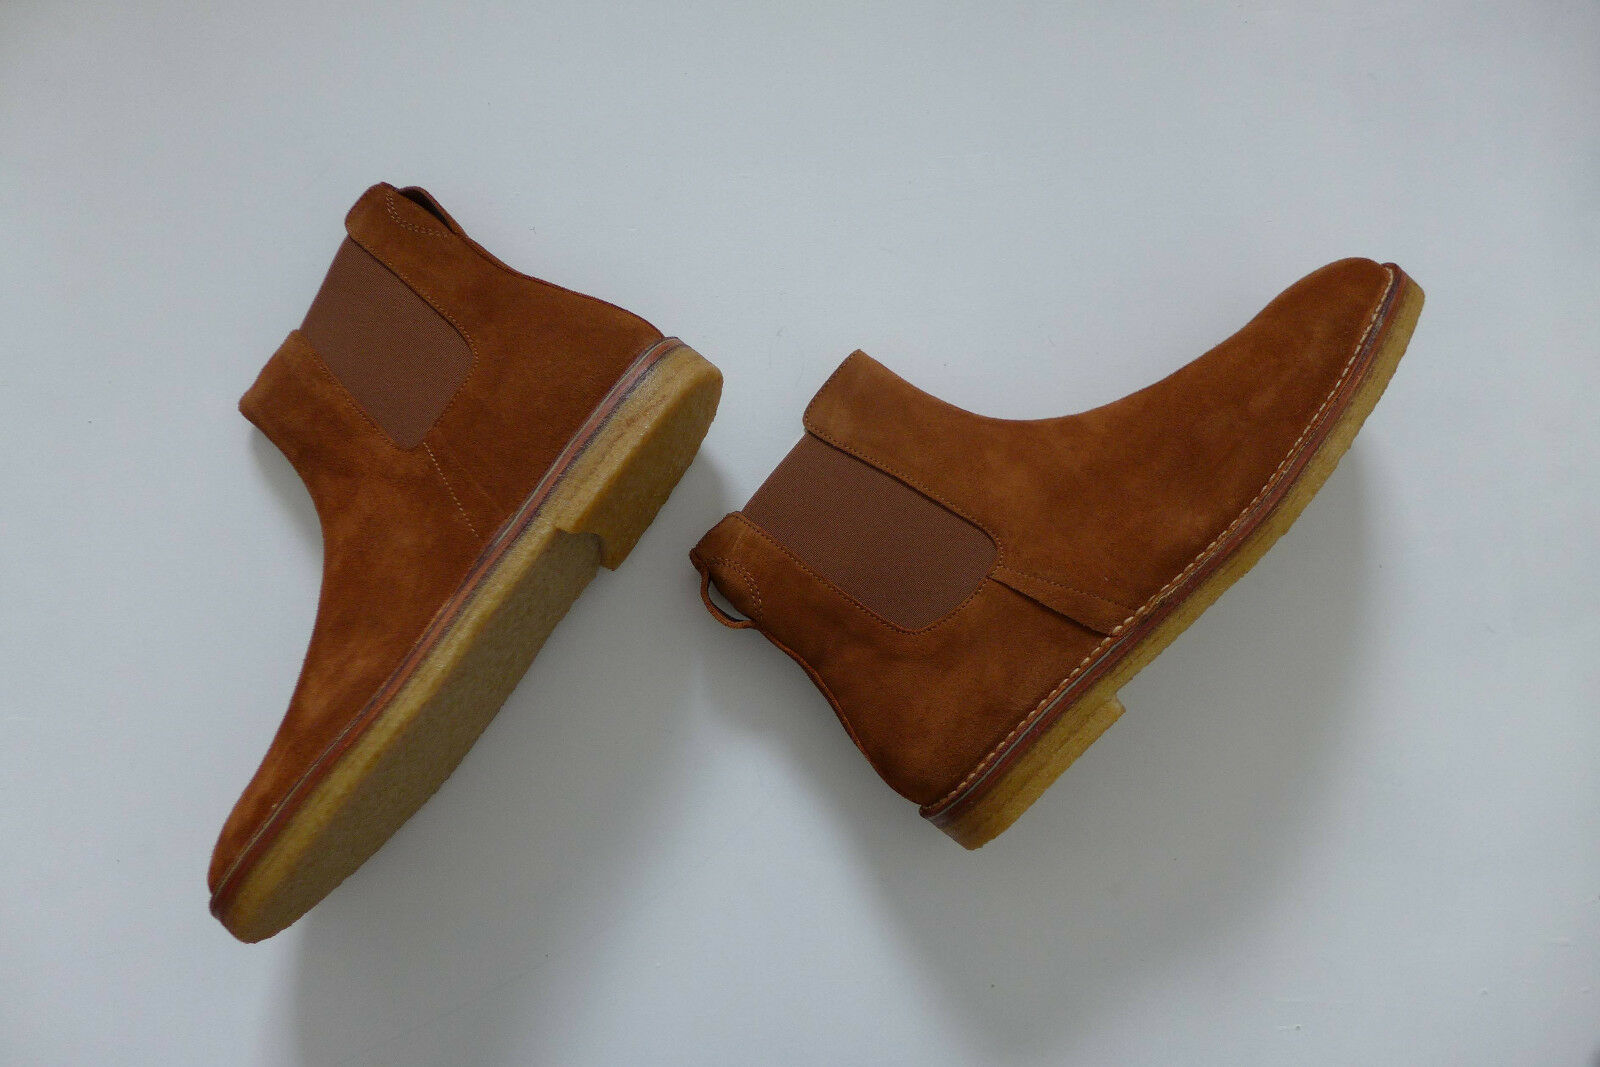 Folk Brandon Tan Suede Chelsea Stiefel, Größe UK11 - New with Box